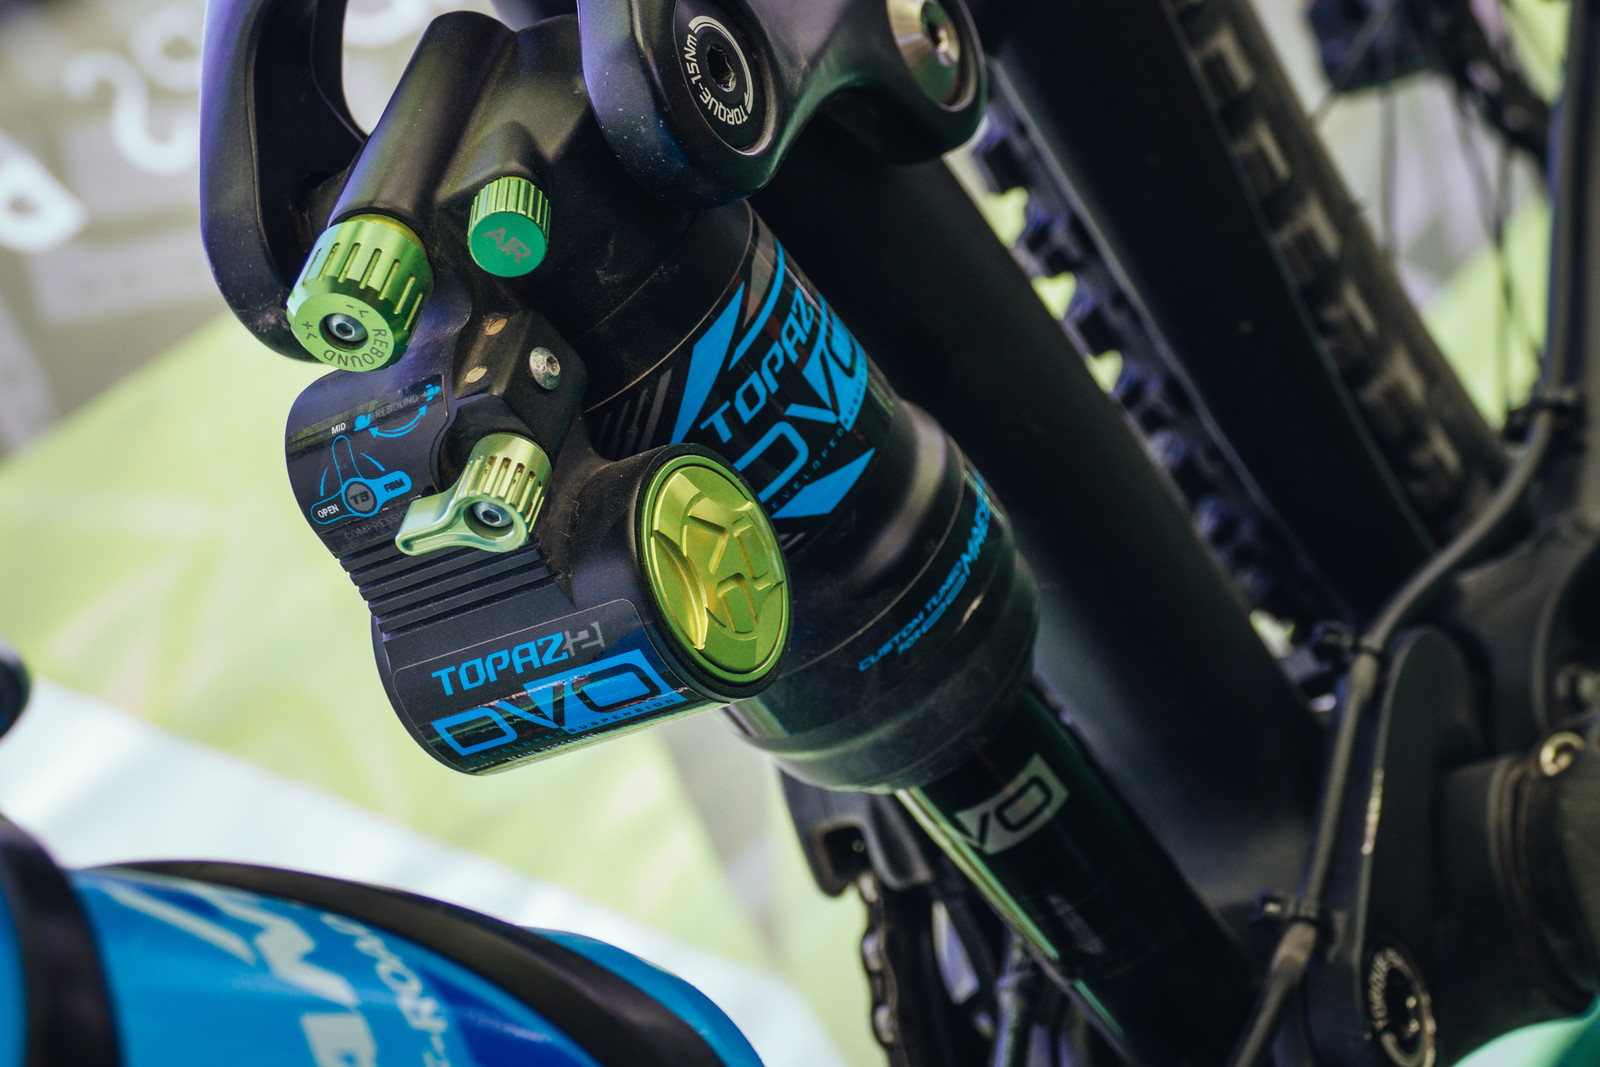 DVO Dials in the New Topaz 2 Rear Shock and Onyx Single Crown Fork - Sea Otter Classic